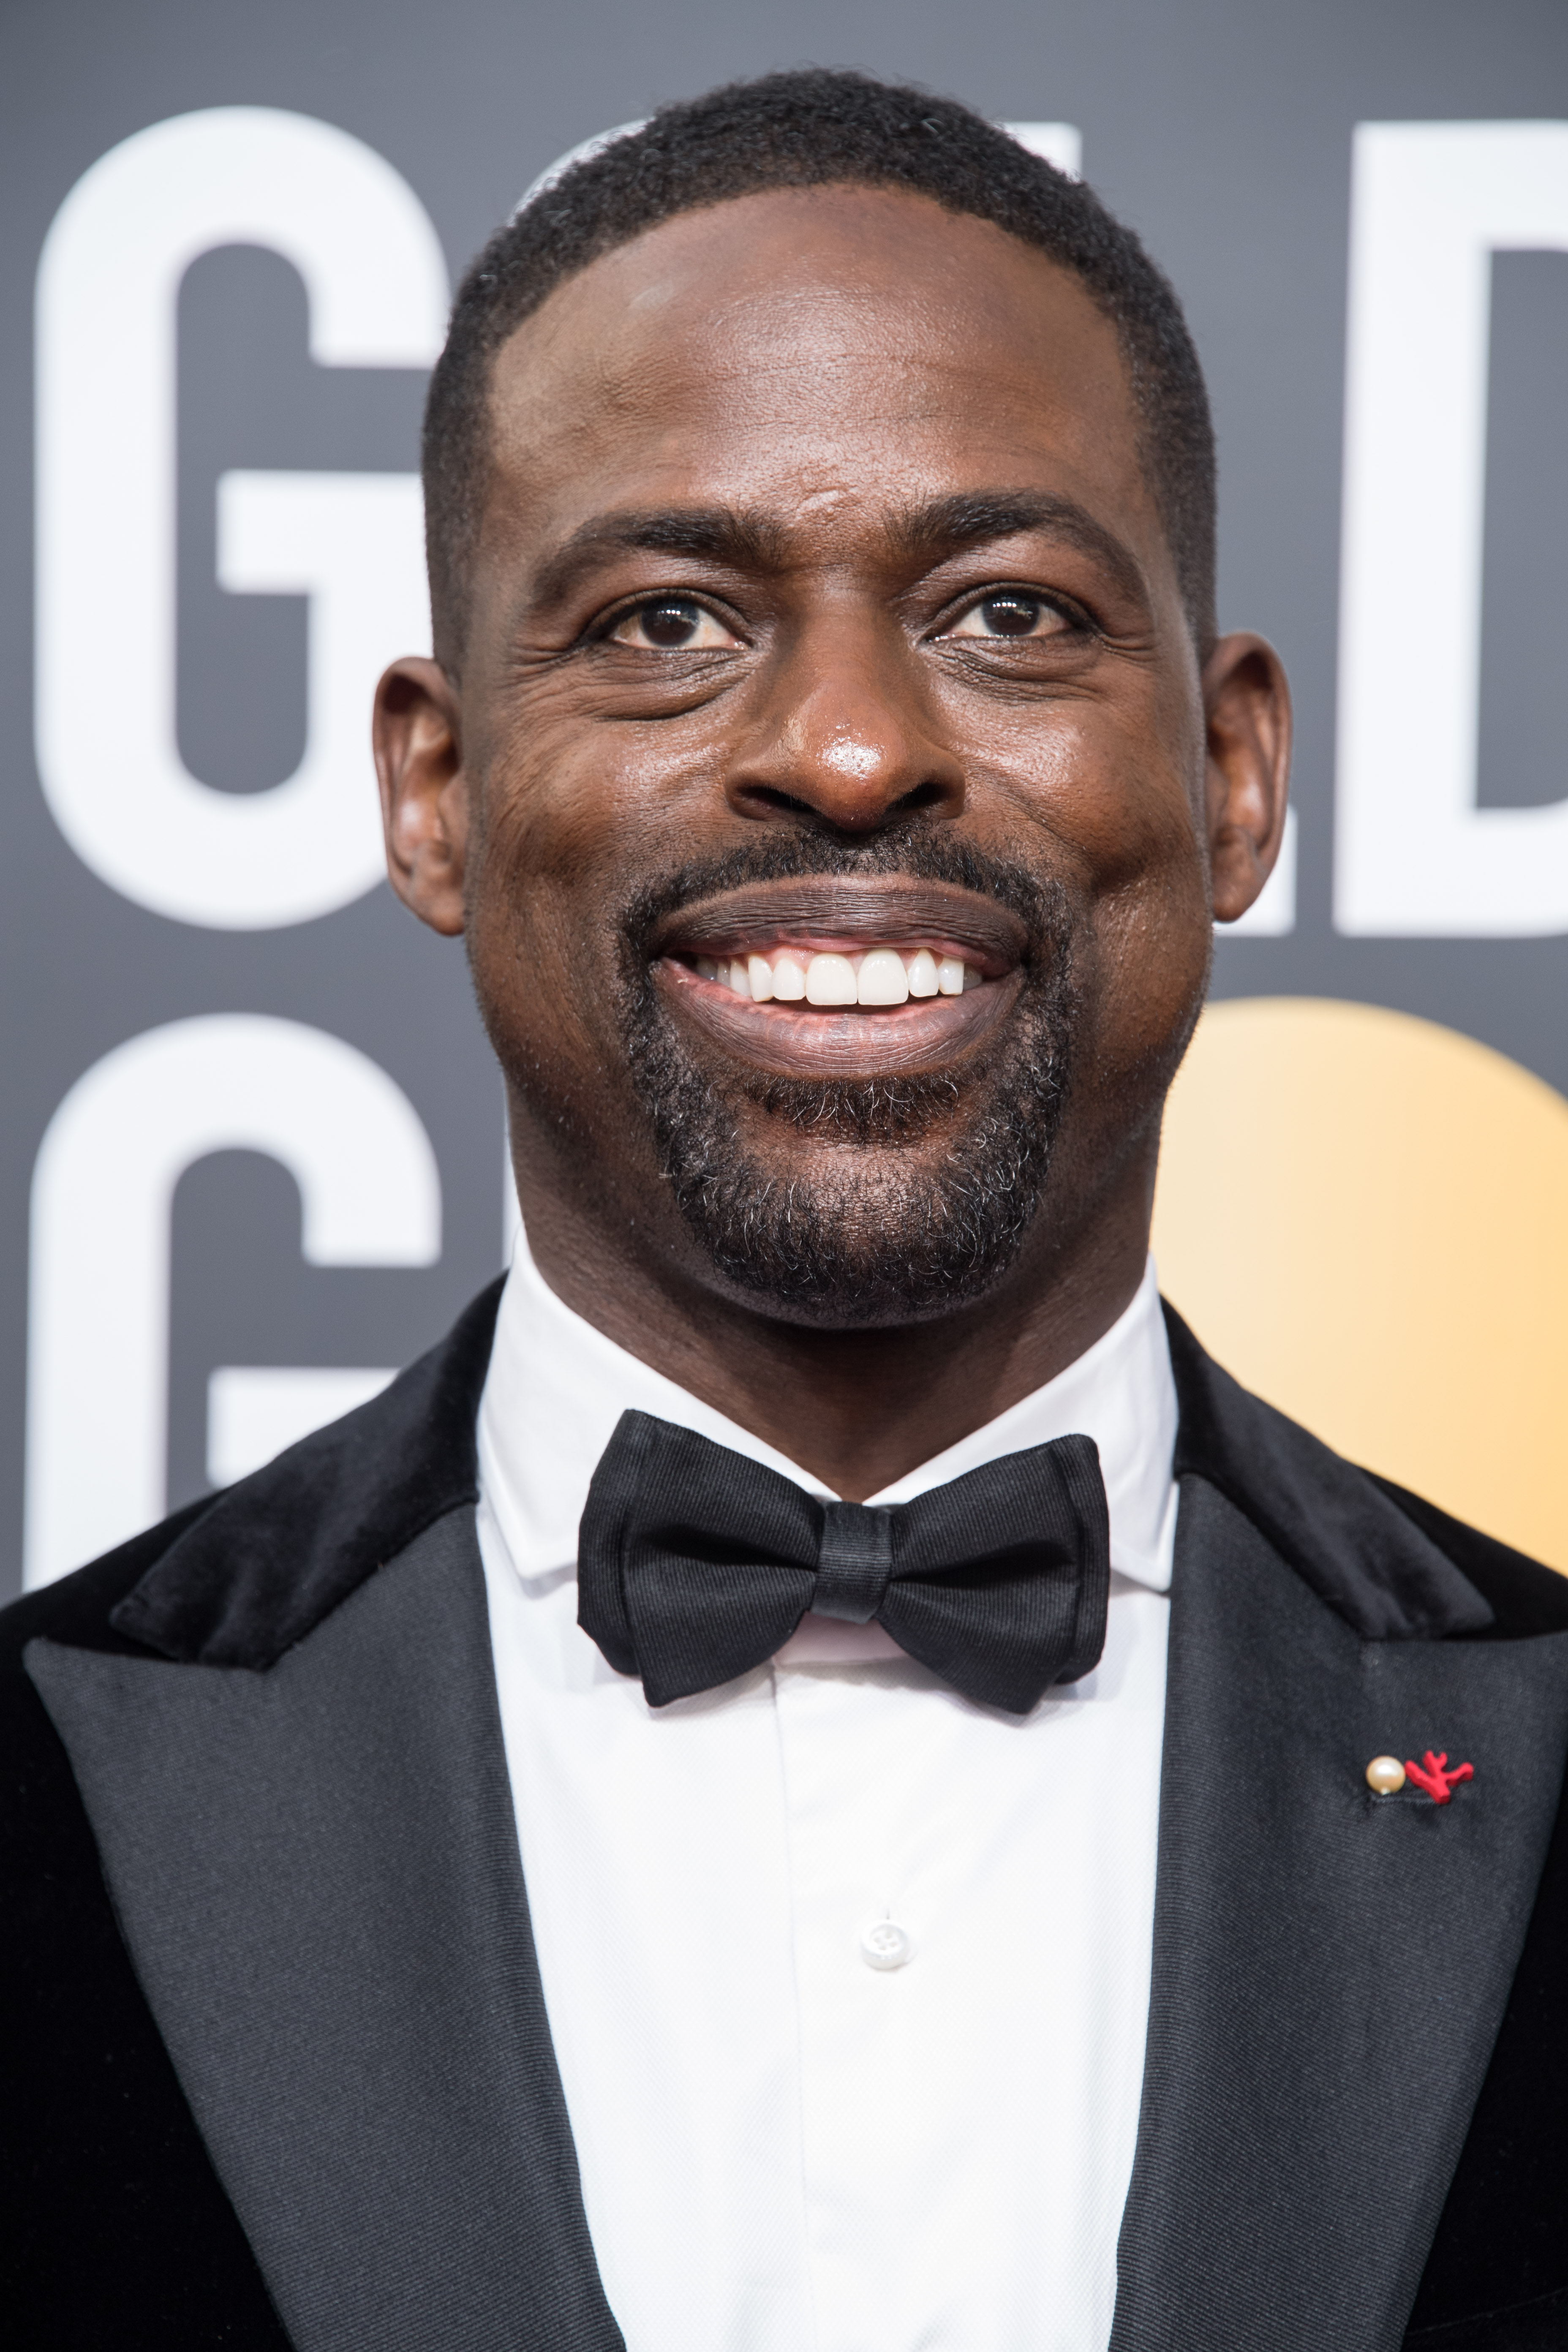 "Nominated for BEST PERFORMANCE BY AN ACTOR IN A TELEVISION SERIES – DRAMA for his role in ""This Is Us,"" actor Sterling K. Brown arrives at the 75th Annual Golden Globes Awards at the Beverly Hilton in Beverly Hills, CA on Sunday, January 7, 2018."